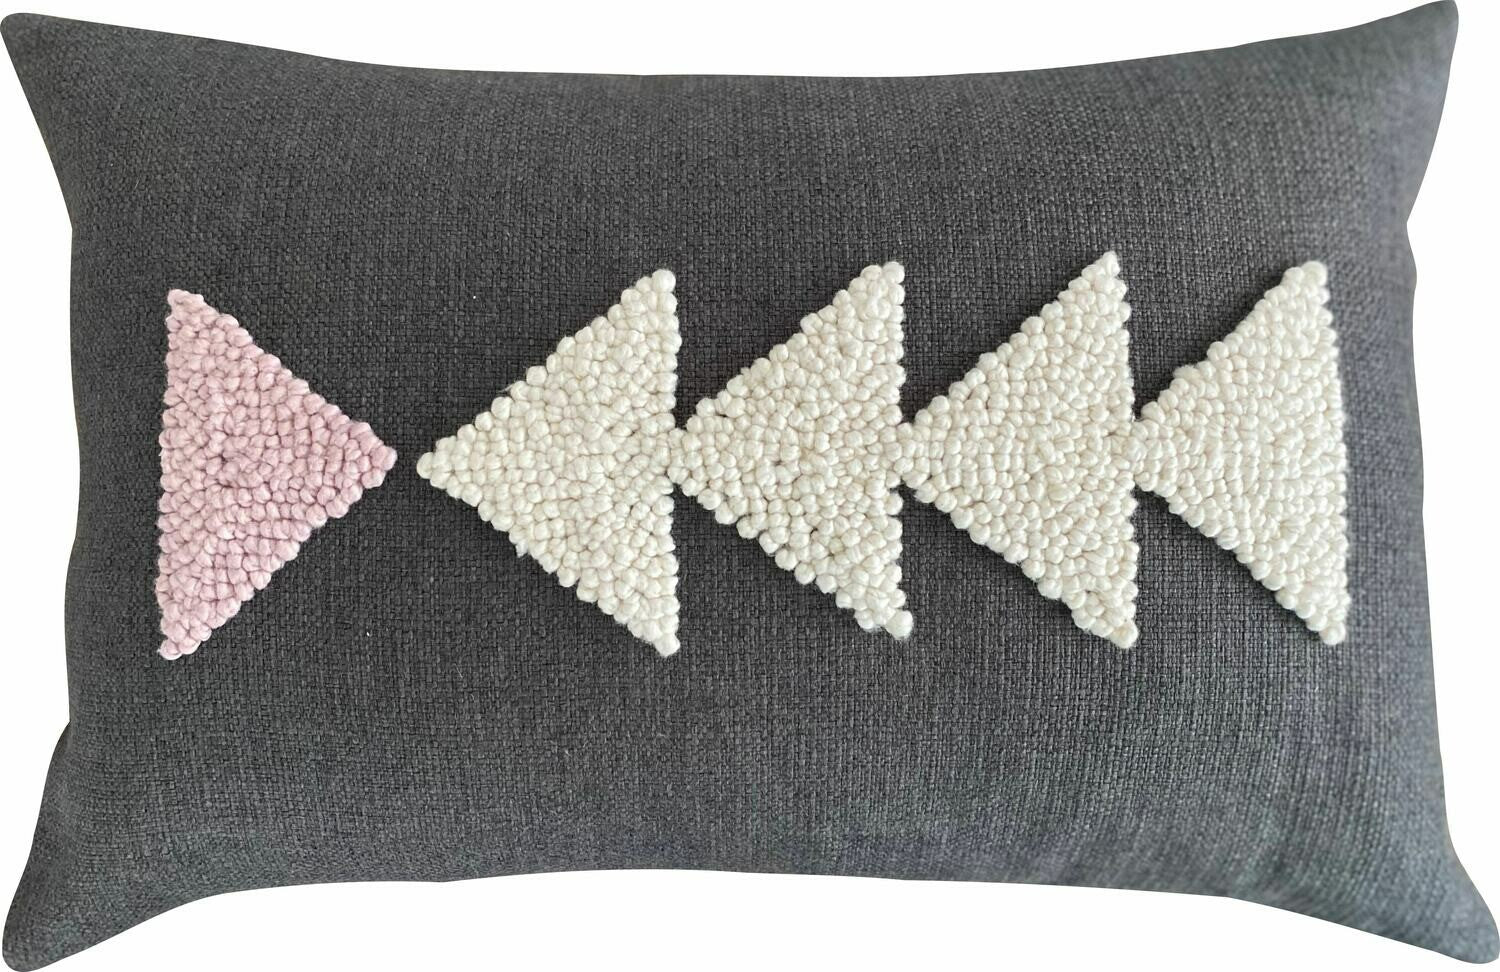 Punch Needle Cushion - AfriScandi Pattern 6